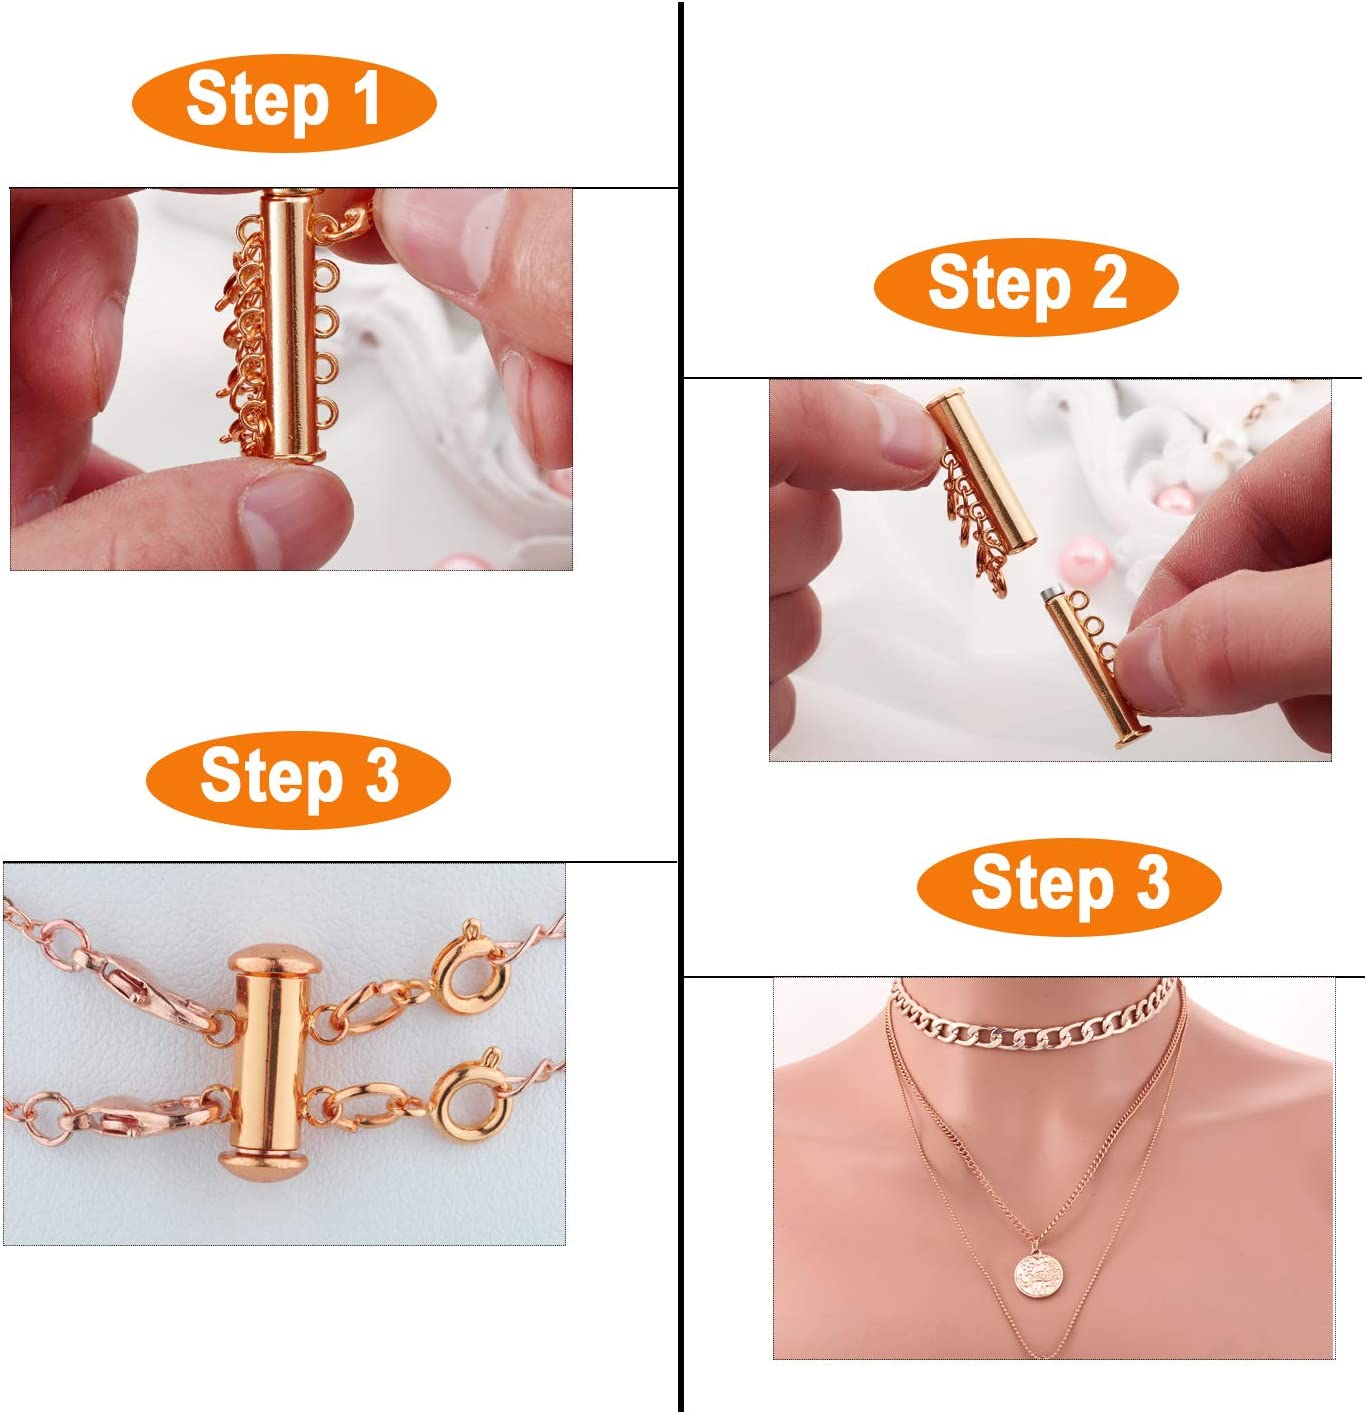 Rose Gold 8 Pieces 4 Sizes Slide Clasp Lock Necklace Connector Multi Strands Slide Tube Clasps with Storage Box for Layered Bracelet Necklace Jewelry Crafts